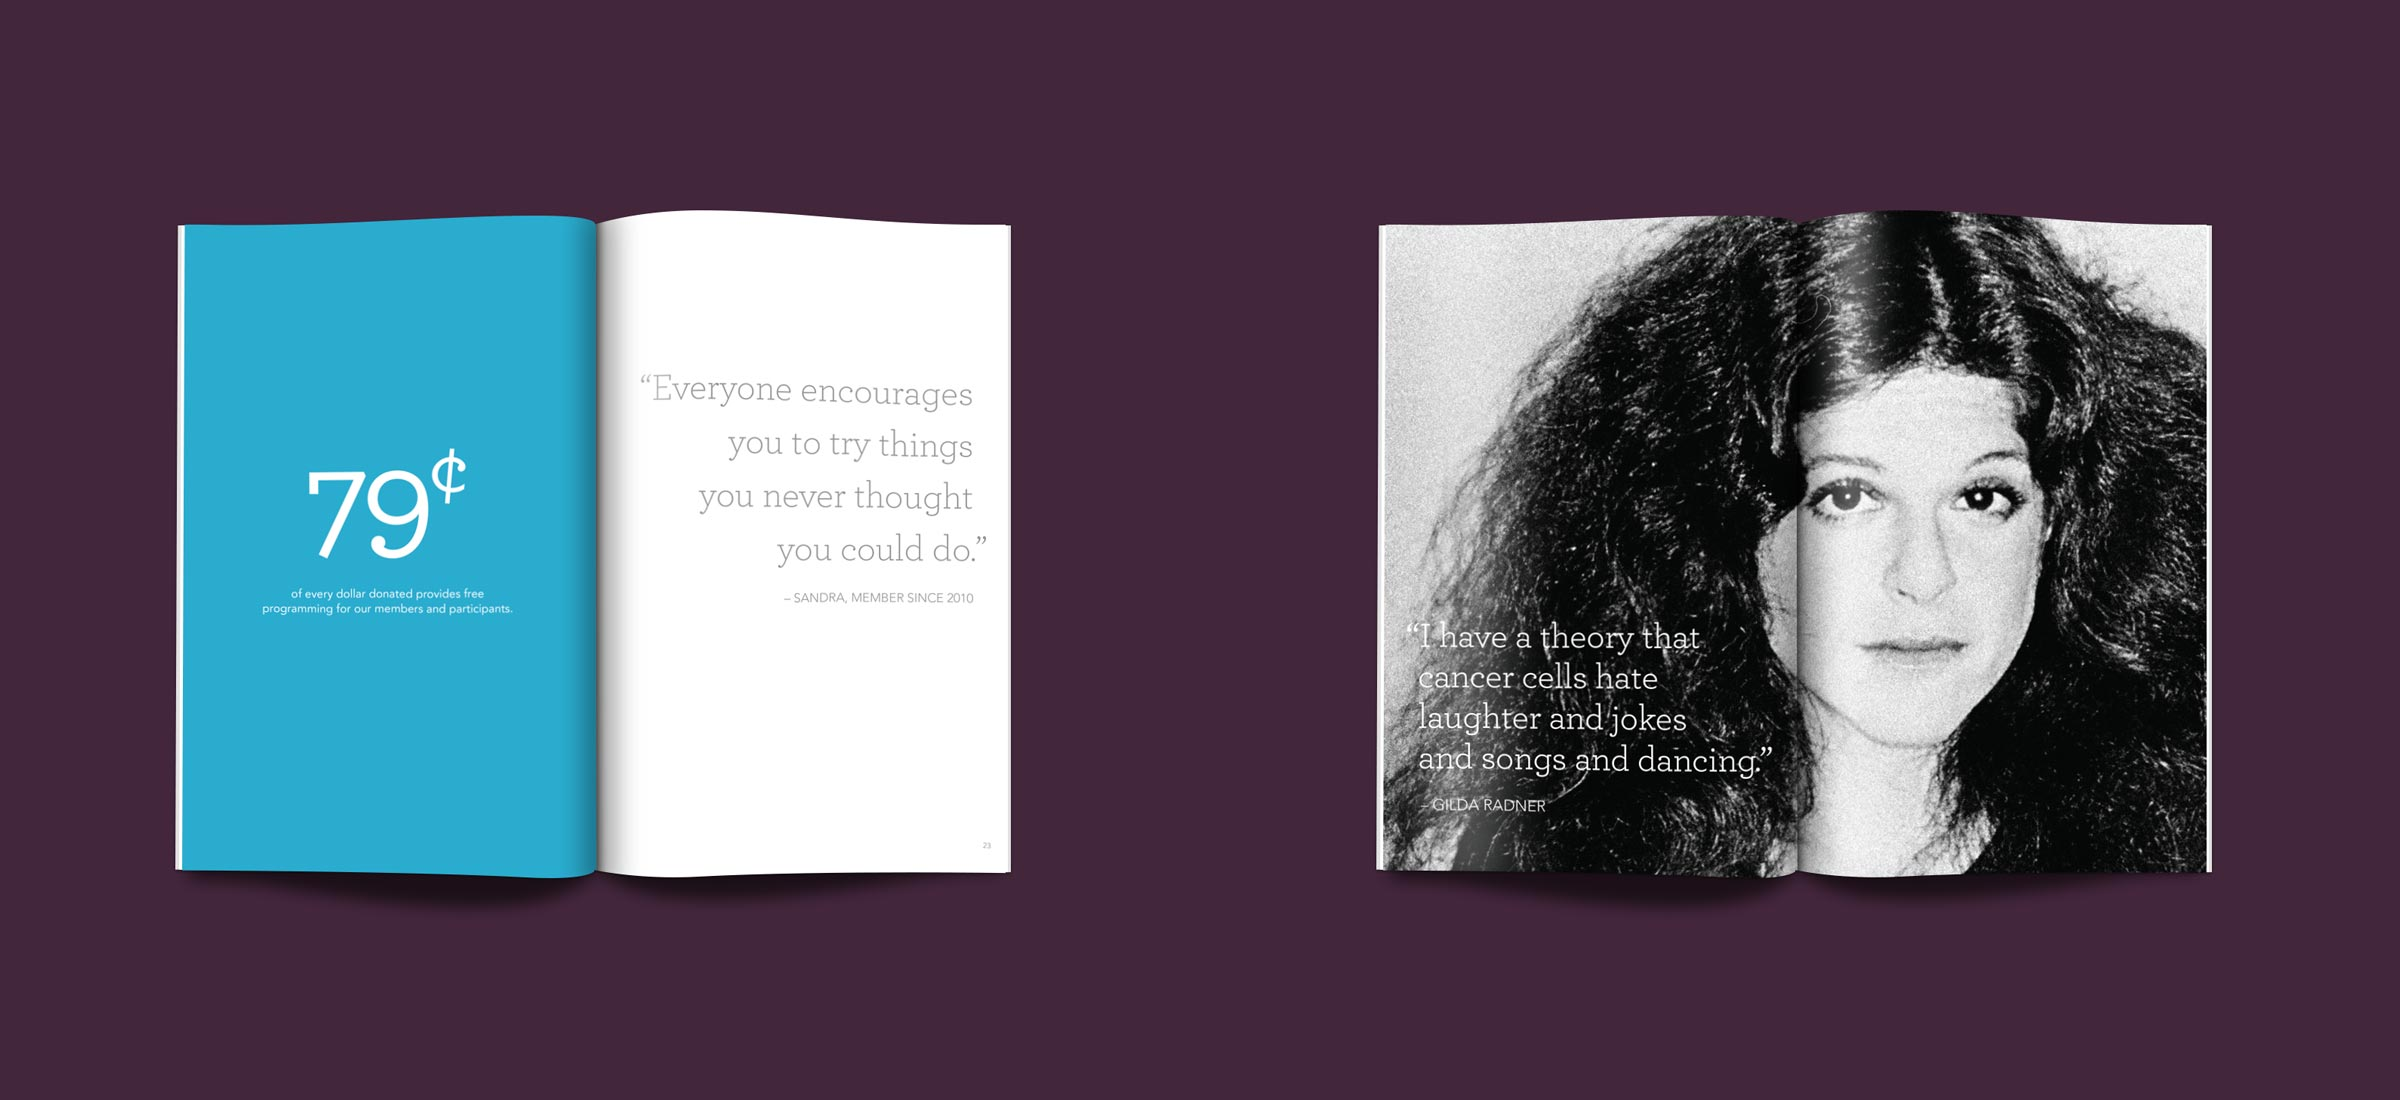 Print collateral created by Blue Flame Thinking for Gilda's Club Chicago's awareness campaign.